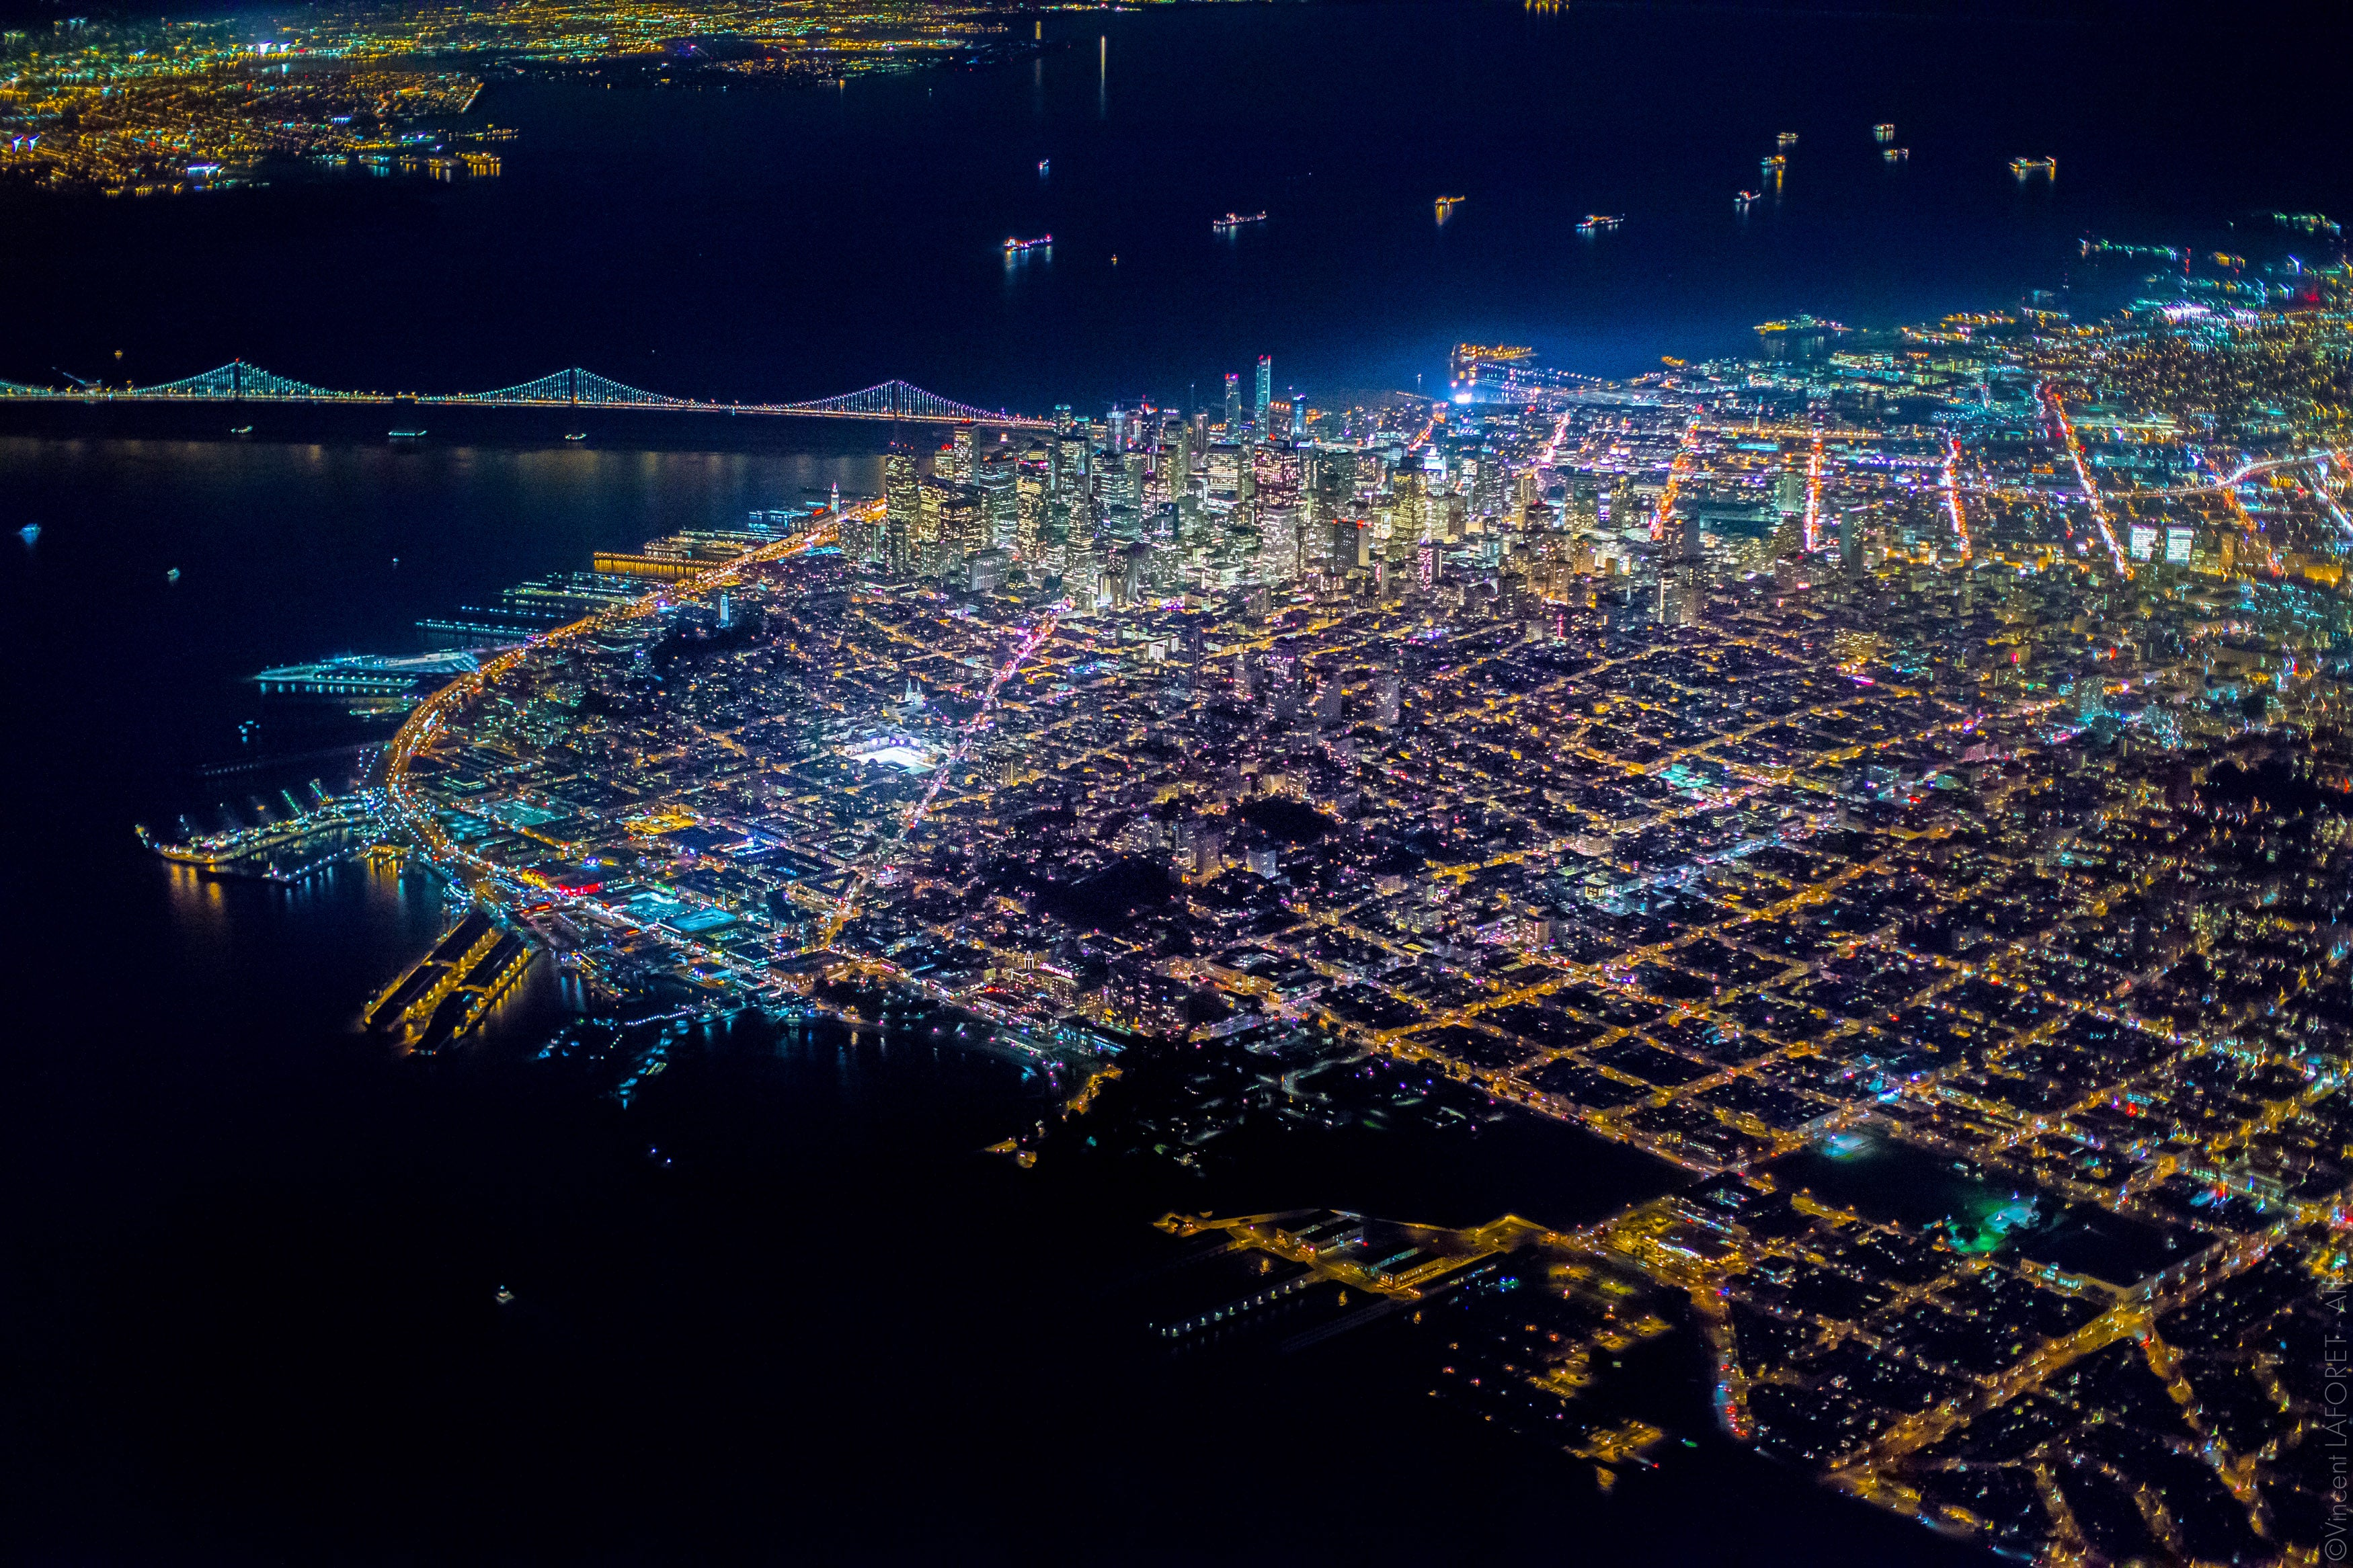 These incredible aerial views of San Francisco are just jaw dropping